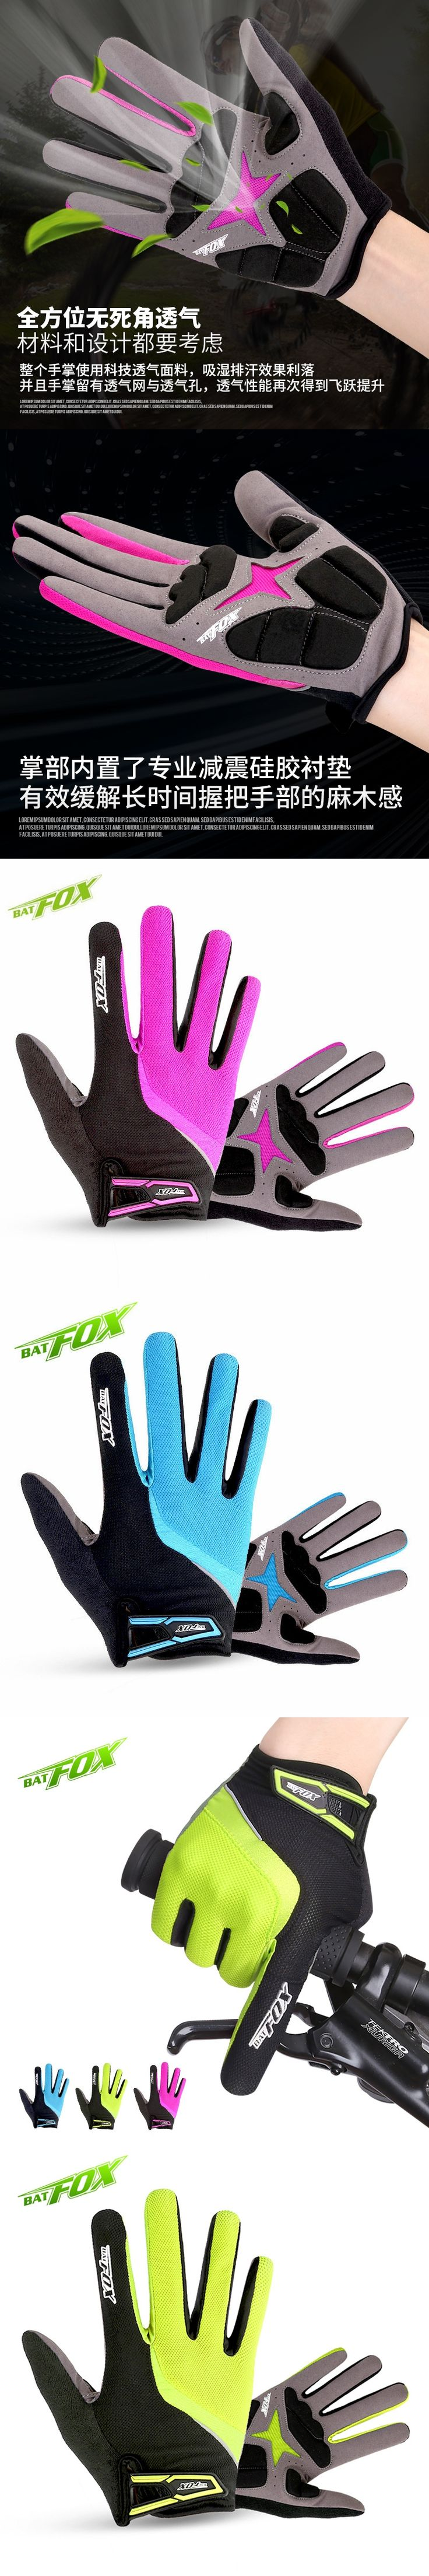 BATFOX Bicycle Gloves winter Mens Women's Sports Gloves Shockproof Full Finger cycling gloves MTB 2017 Road Mountain Bike Gloves